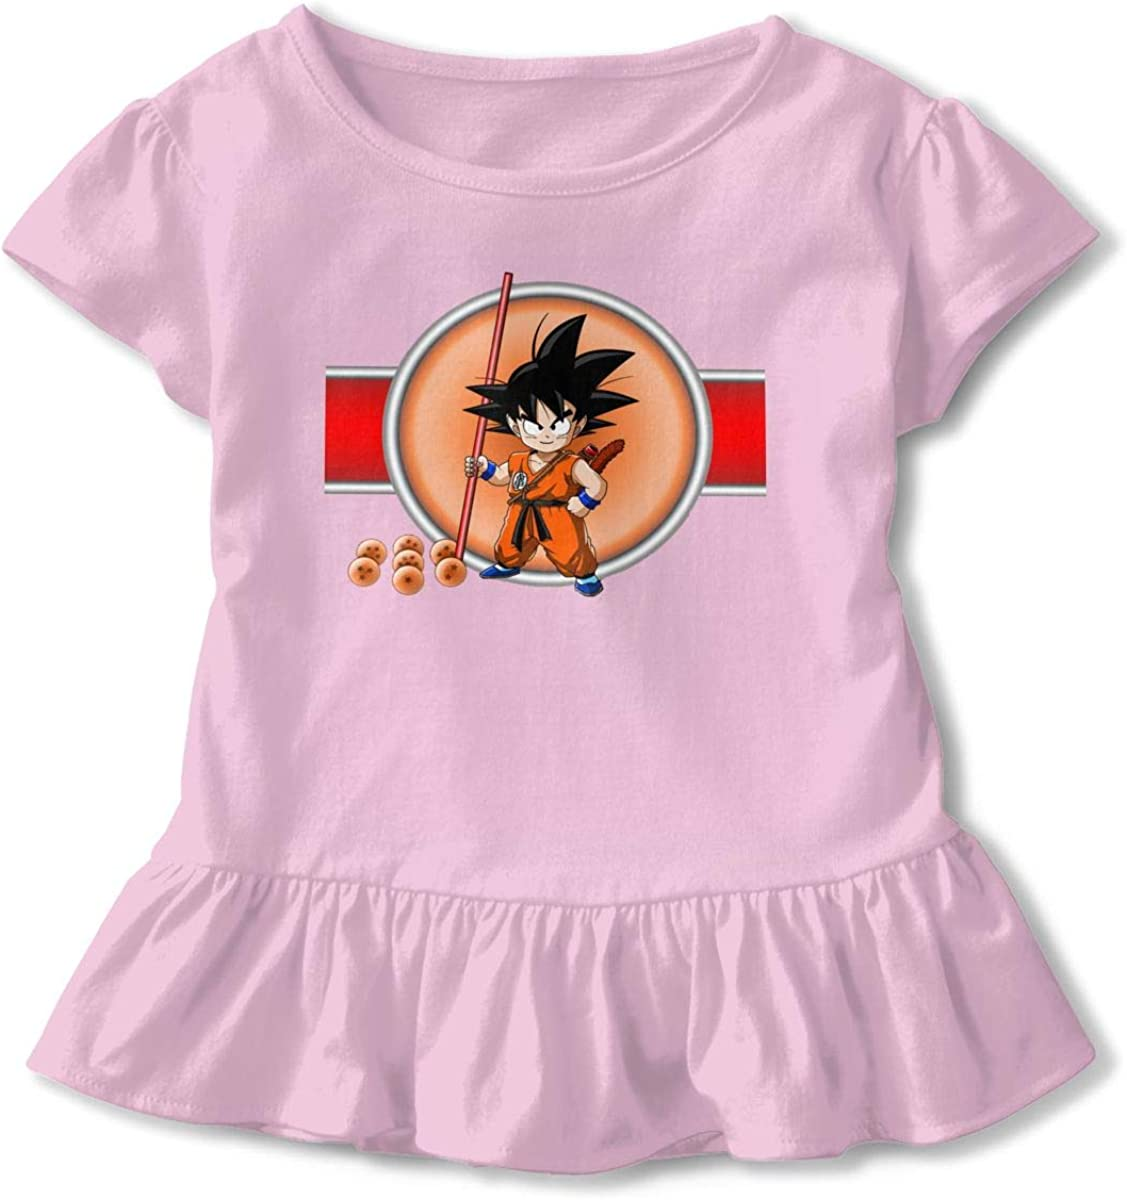 Albuquerque Mall Toddler Max 67% OFF Dresses Classic Ruffled Fi with Goku for